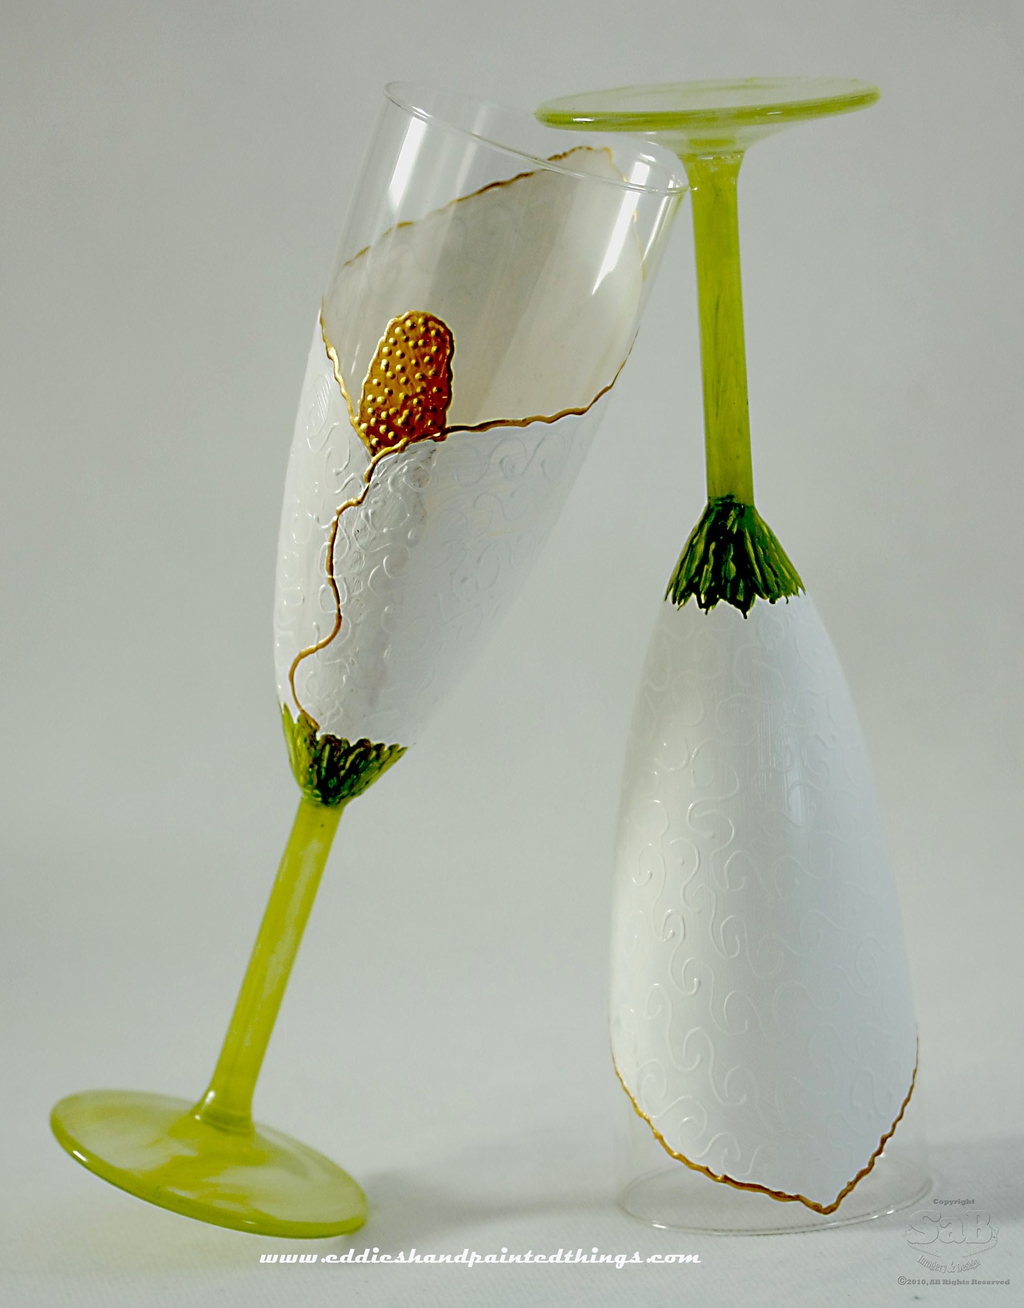 Handpainted-champagne-toasting-flutes-for-wedding-reception-white-gold-green-color-palette-2_0.full